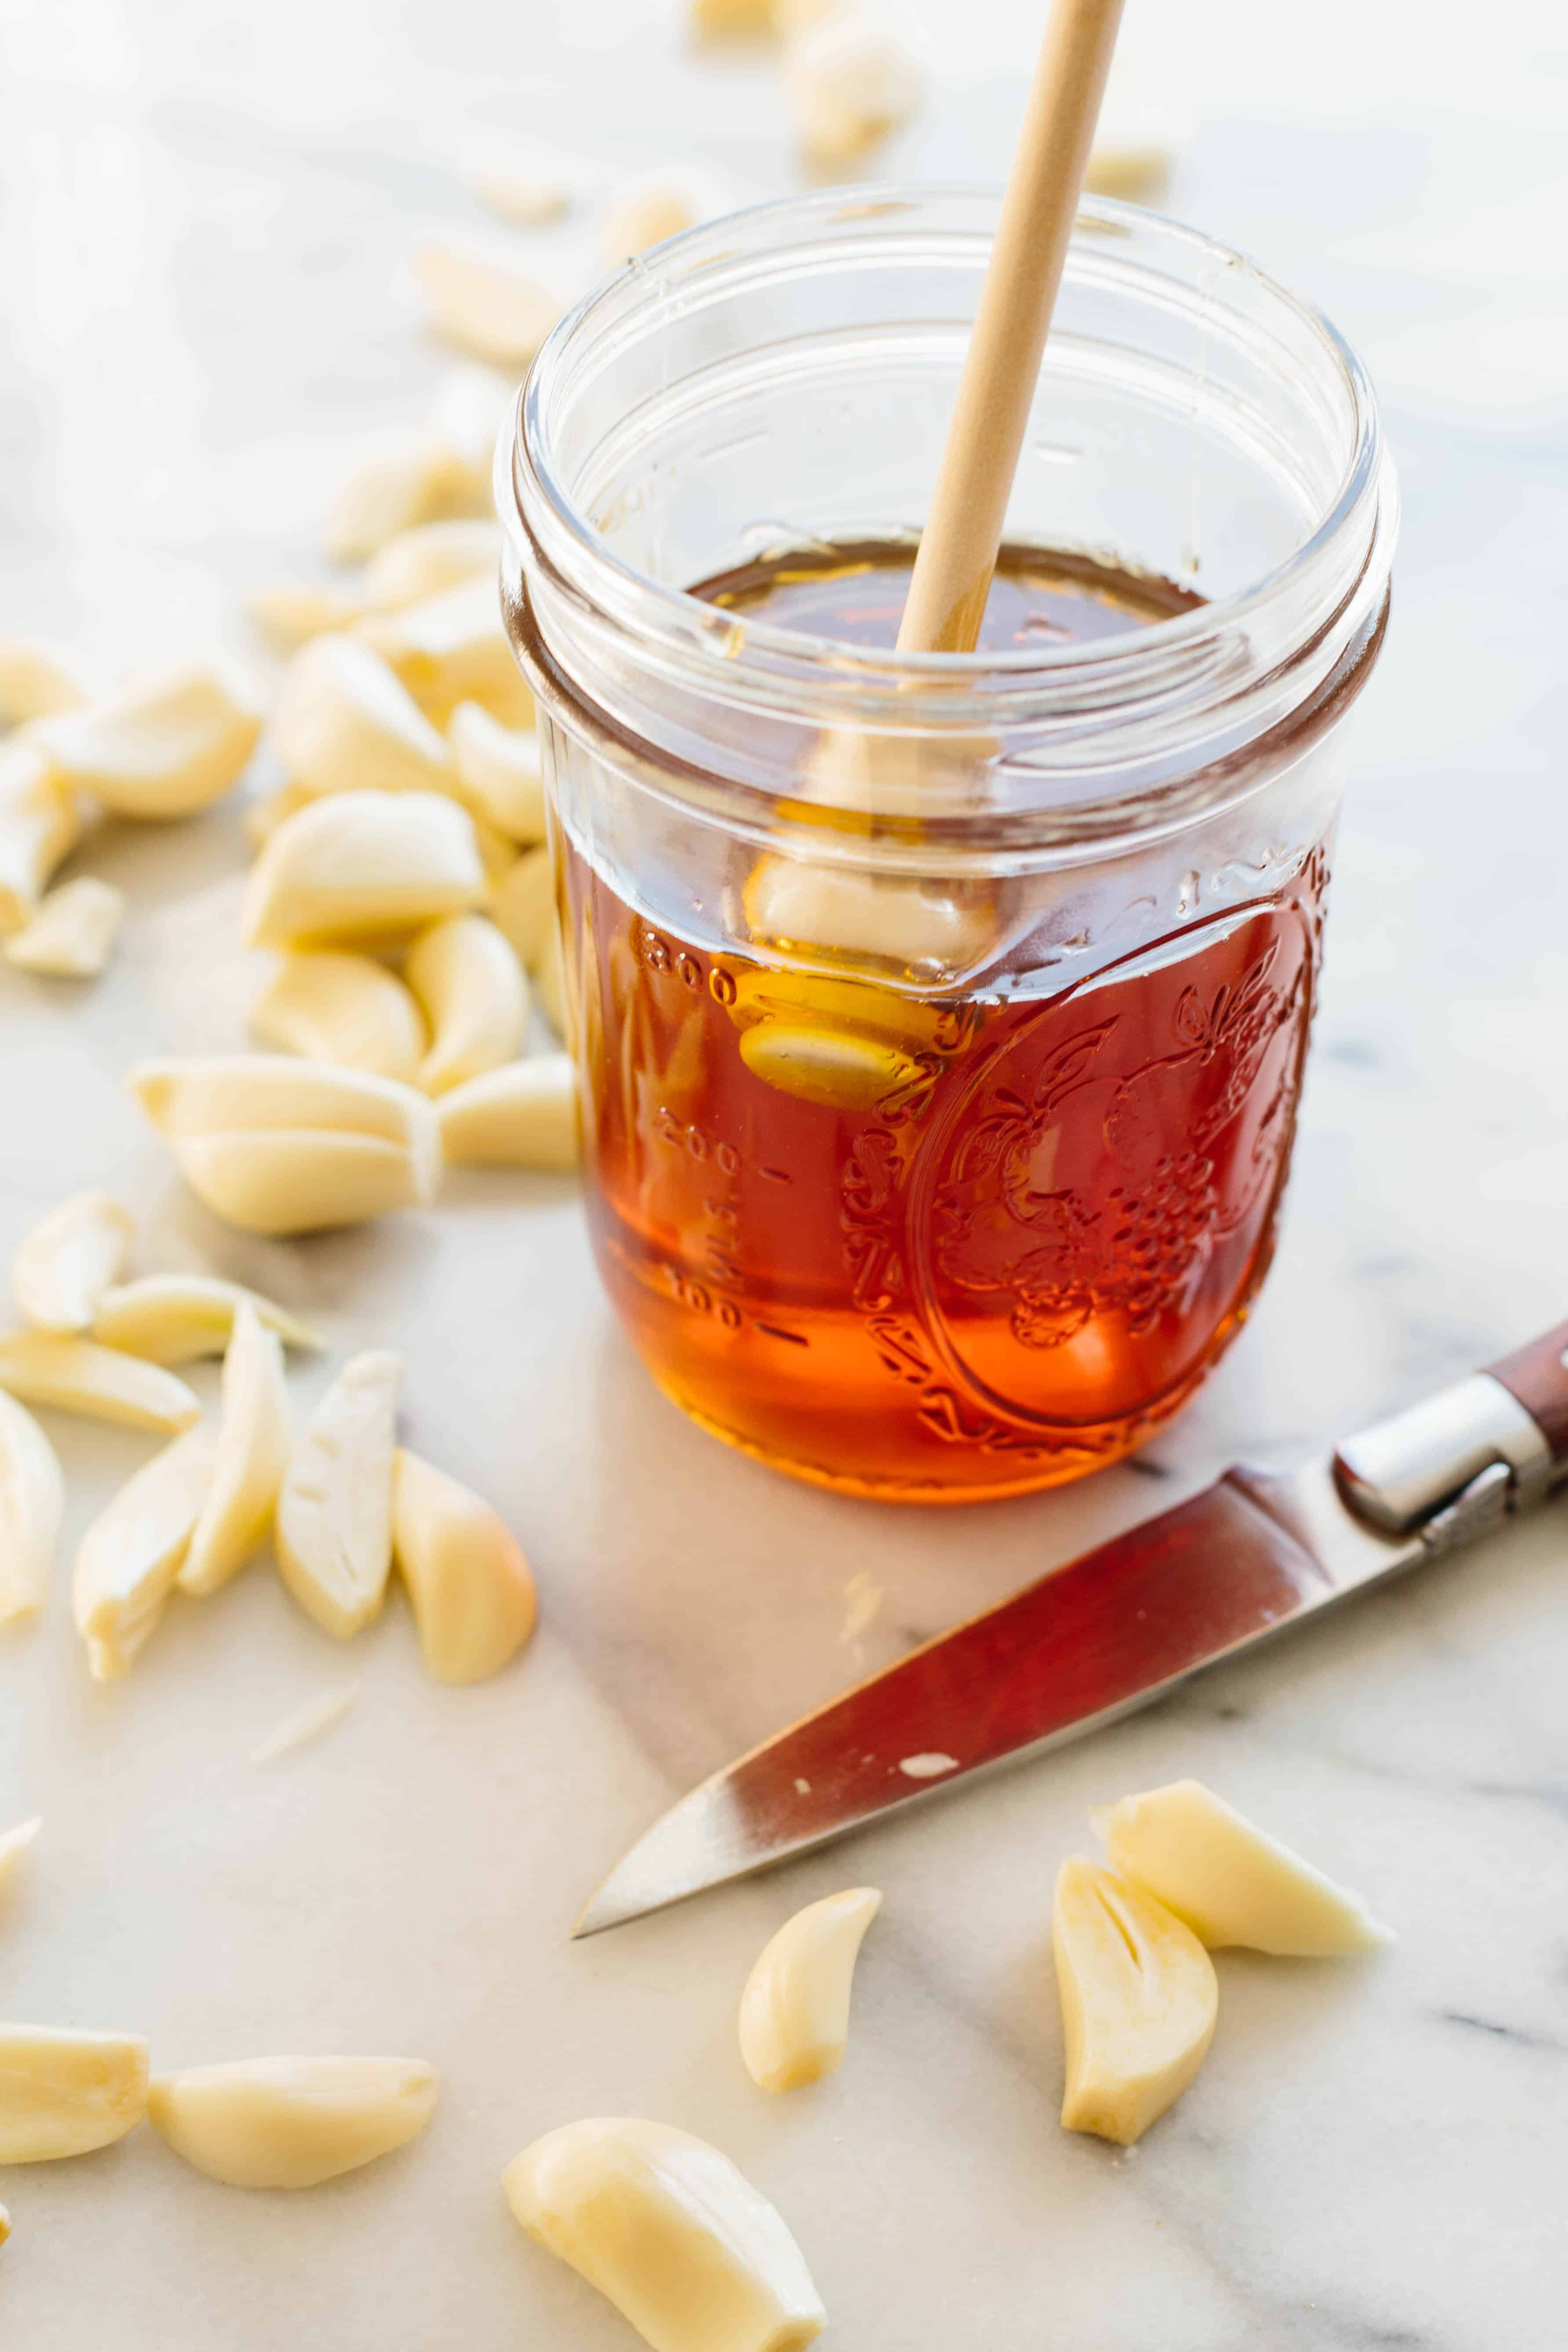 Close up of a glass pint jar of honey surrounded by peeled garlic cloves.